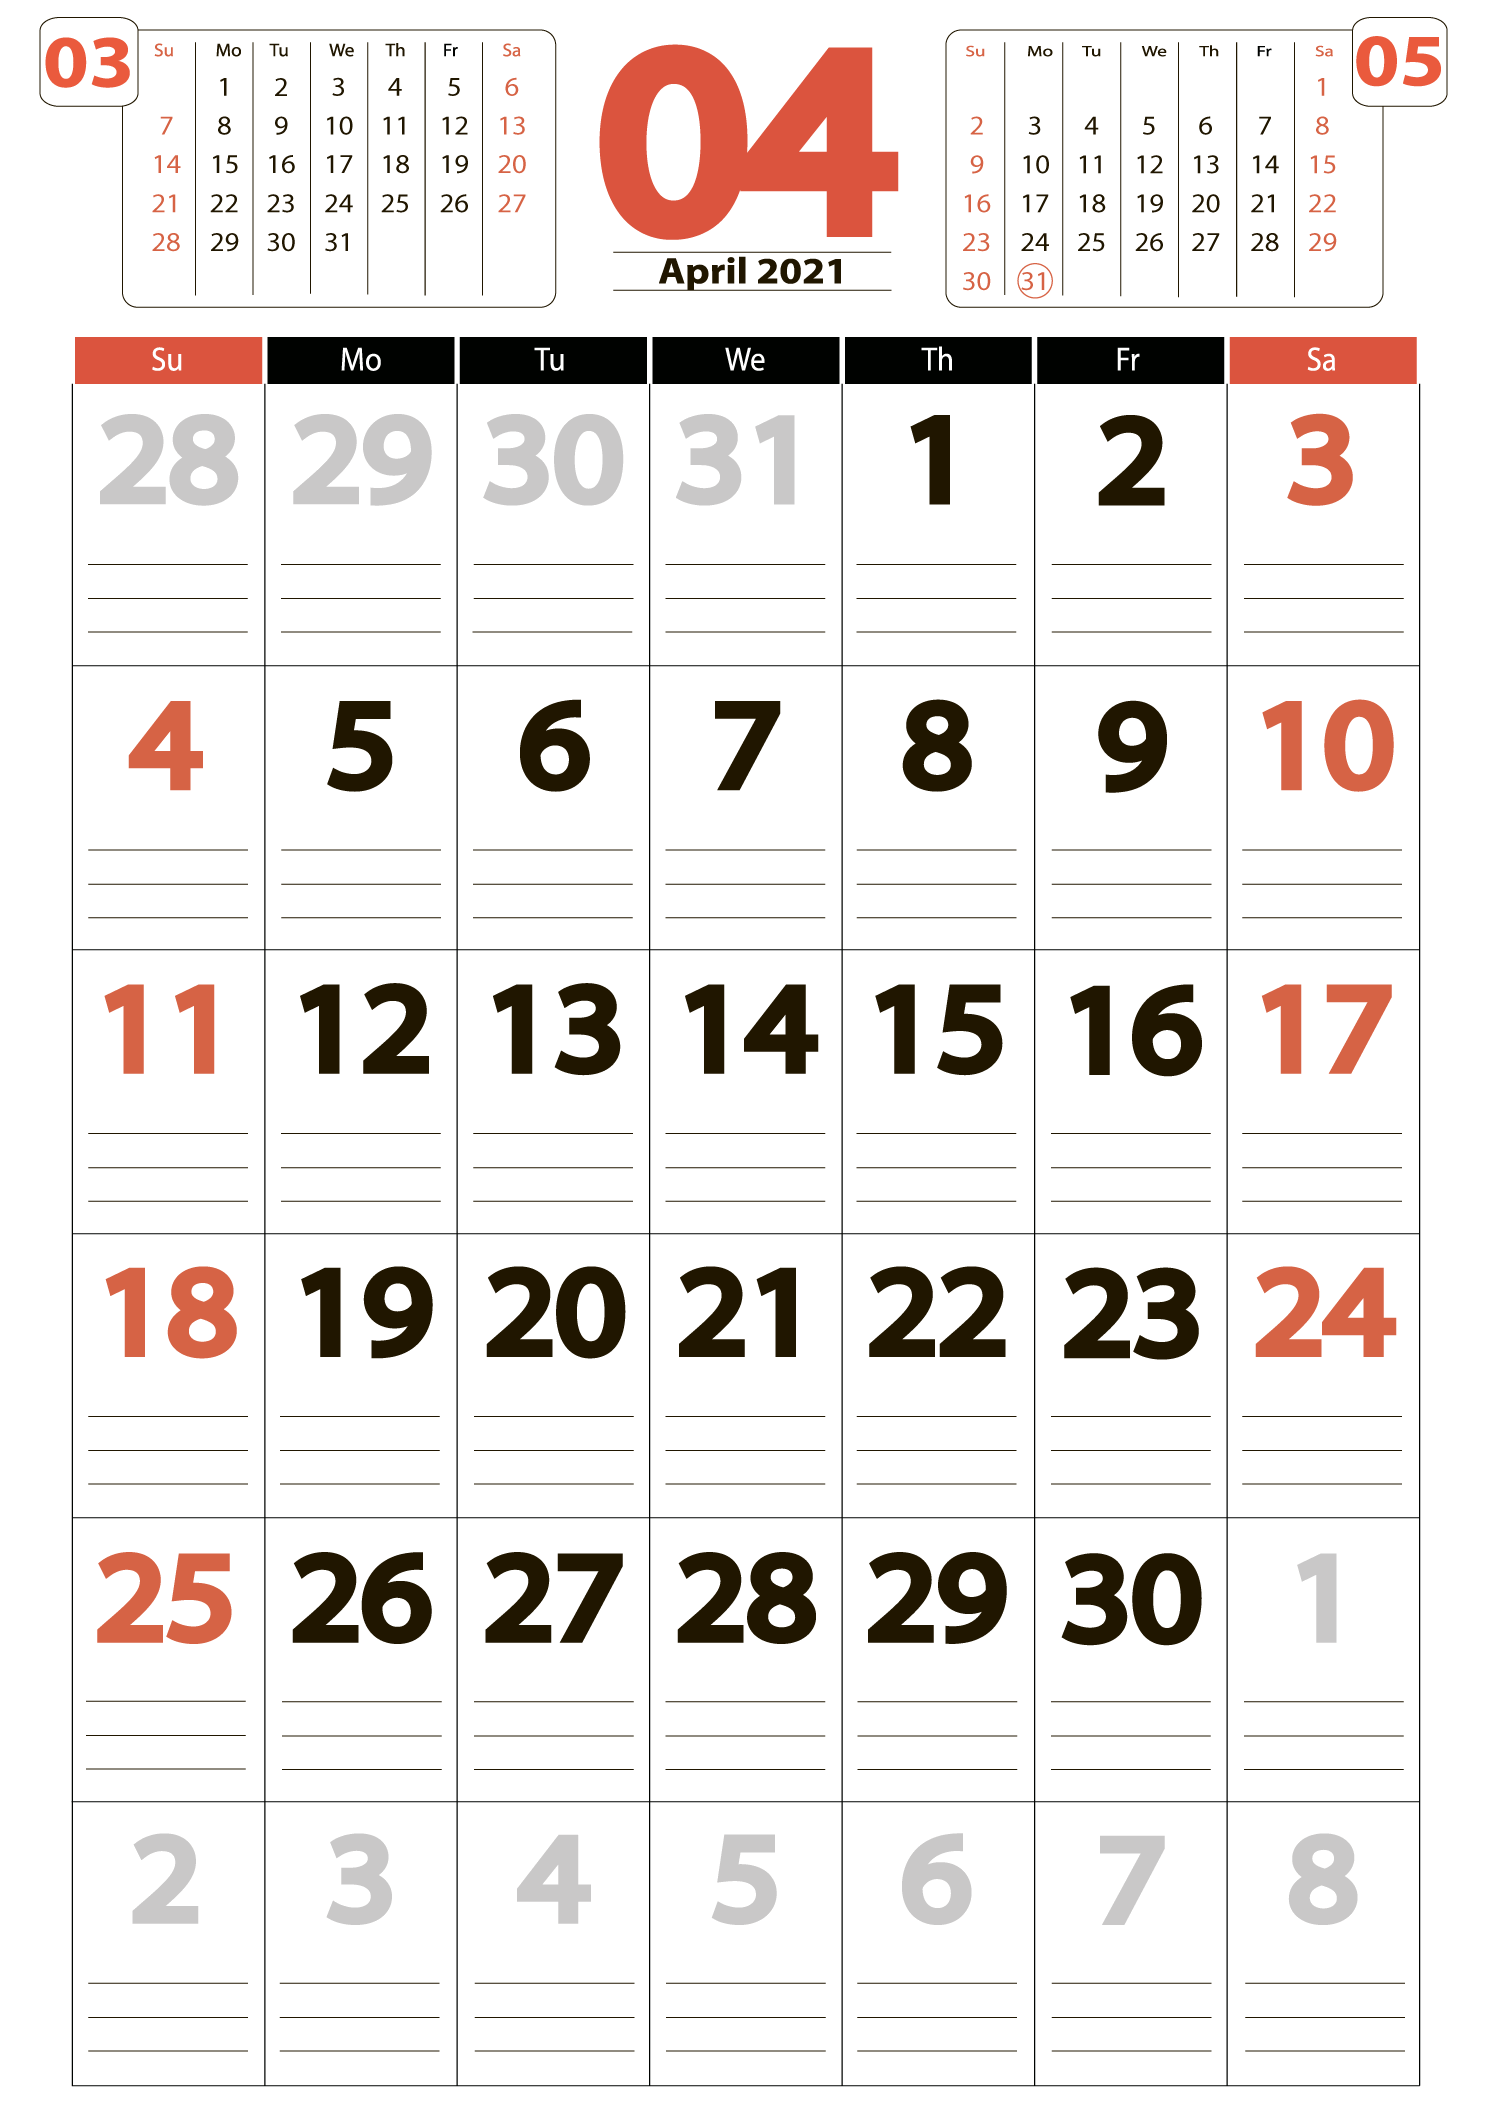 Download calendar 04 2021